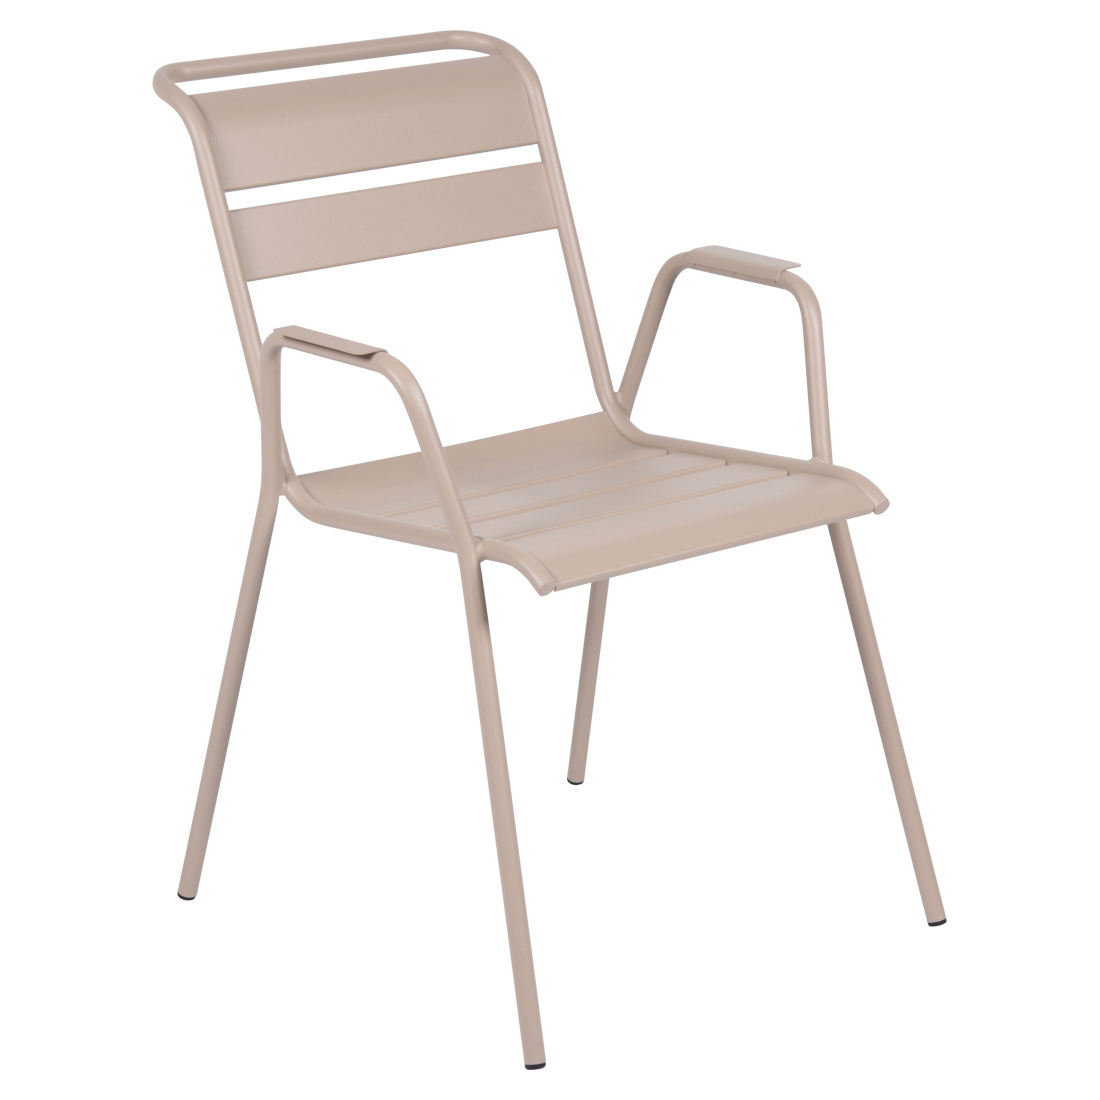 chaise metal, chaise fermob, chaise monceau, fauteuil repas metal, chaise beige